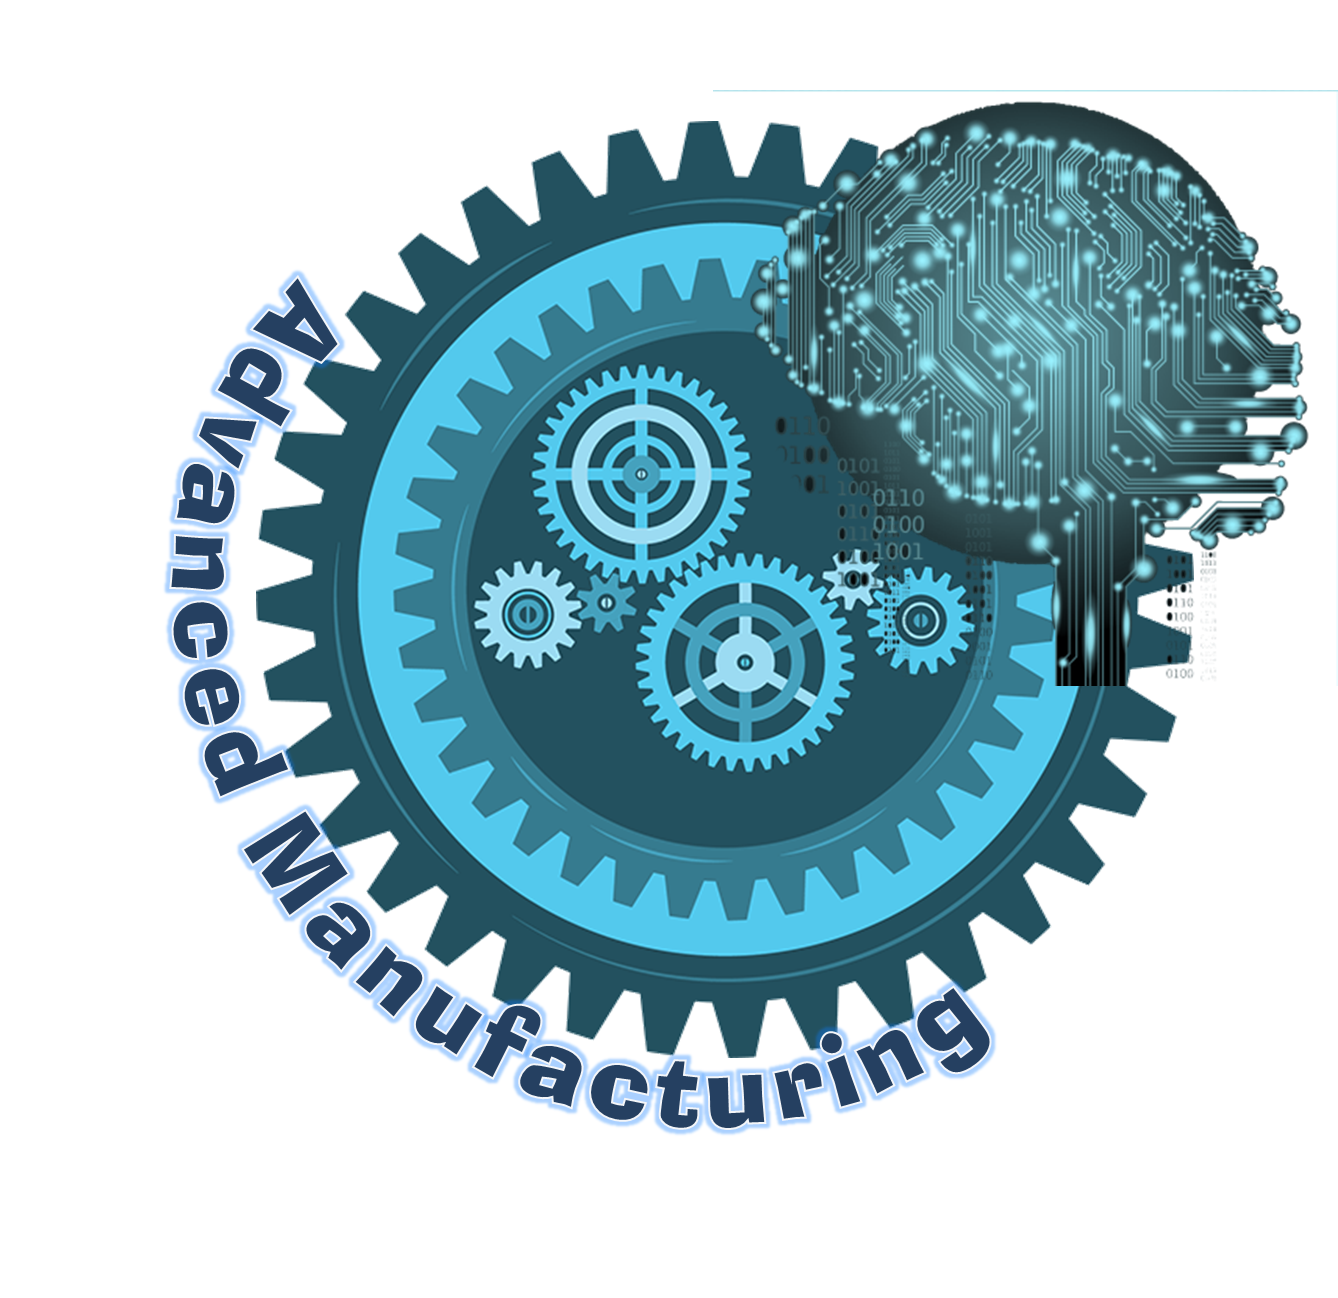 Technology clipart advanced. Manufacturing is still critical